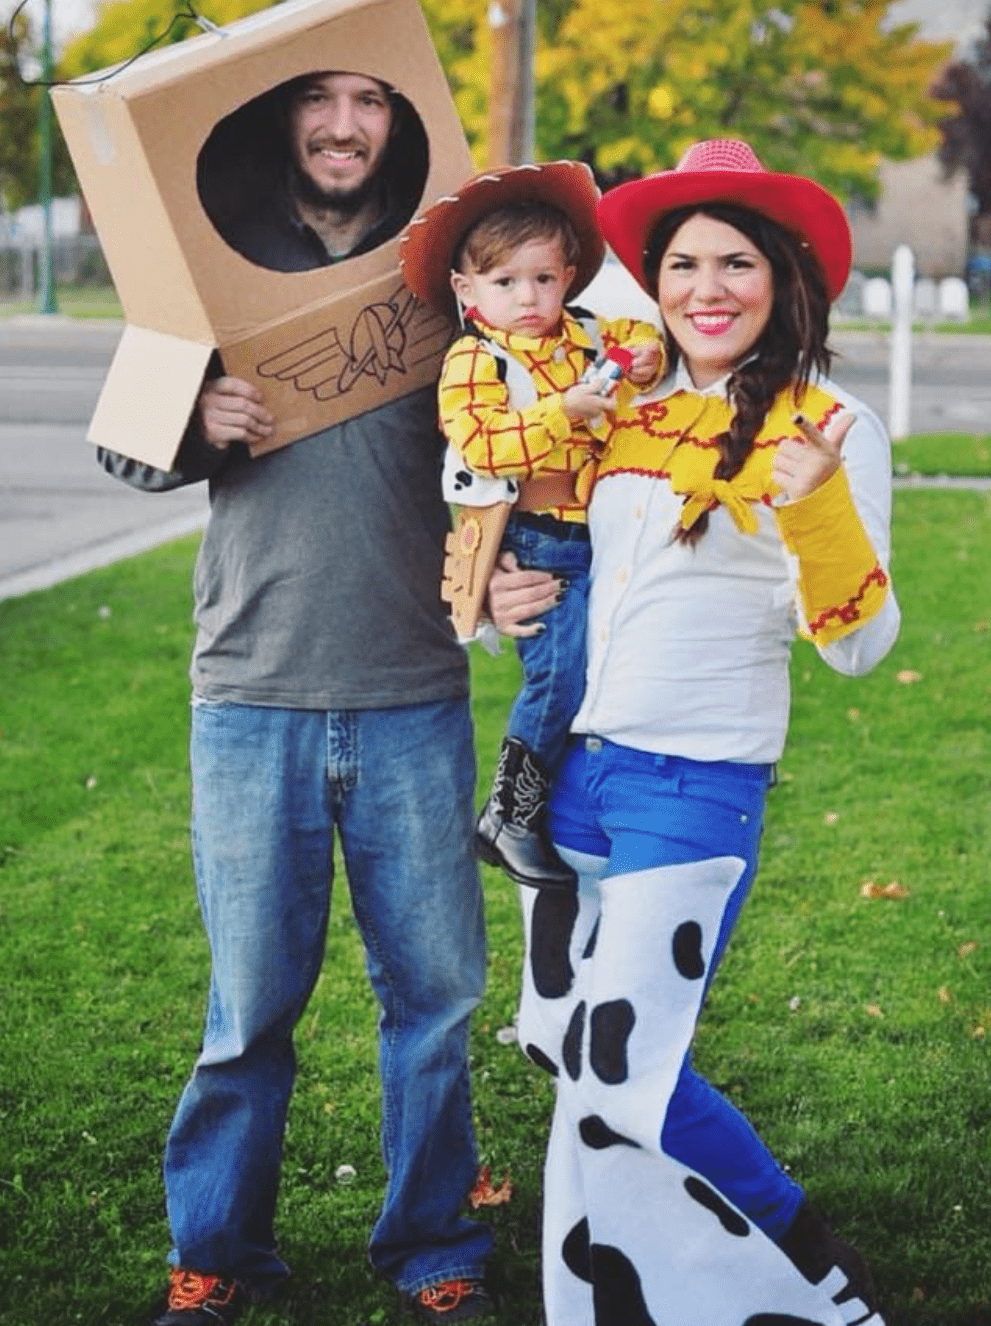 Family poses in matching Halloween costumes.